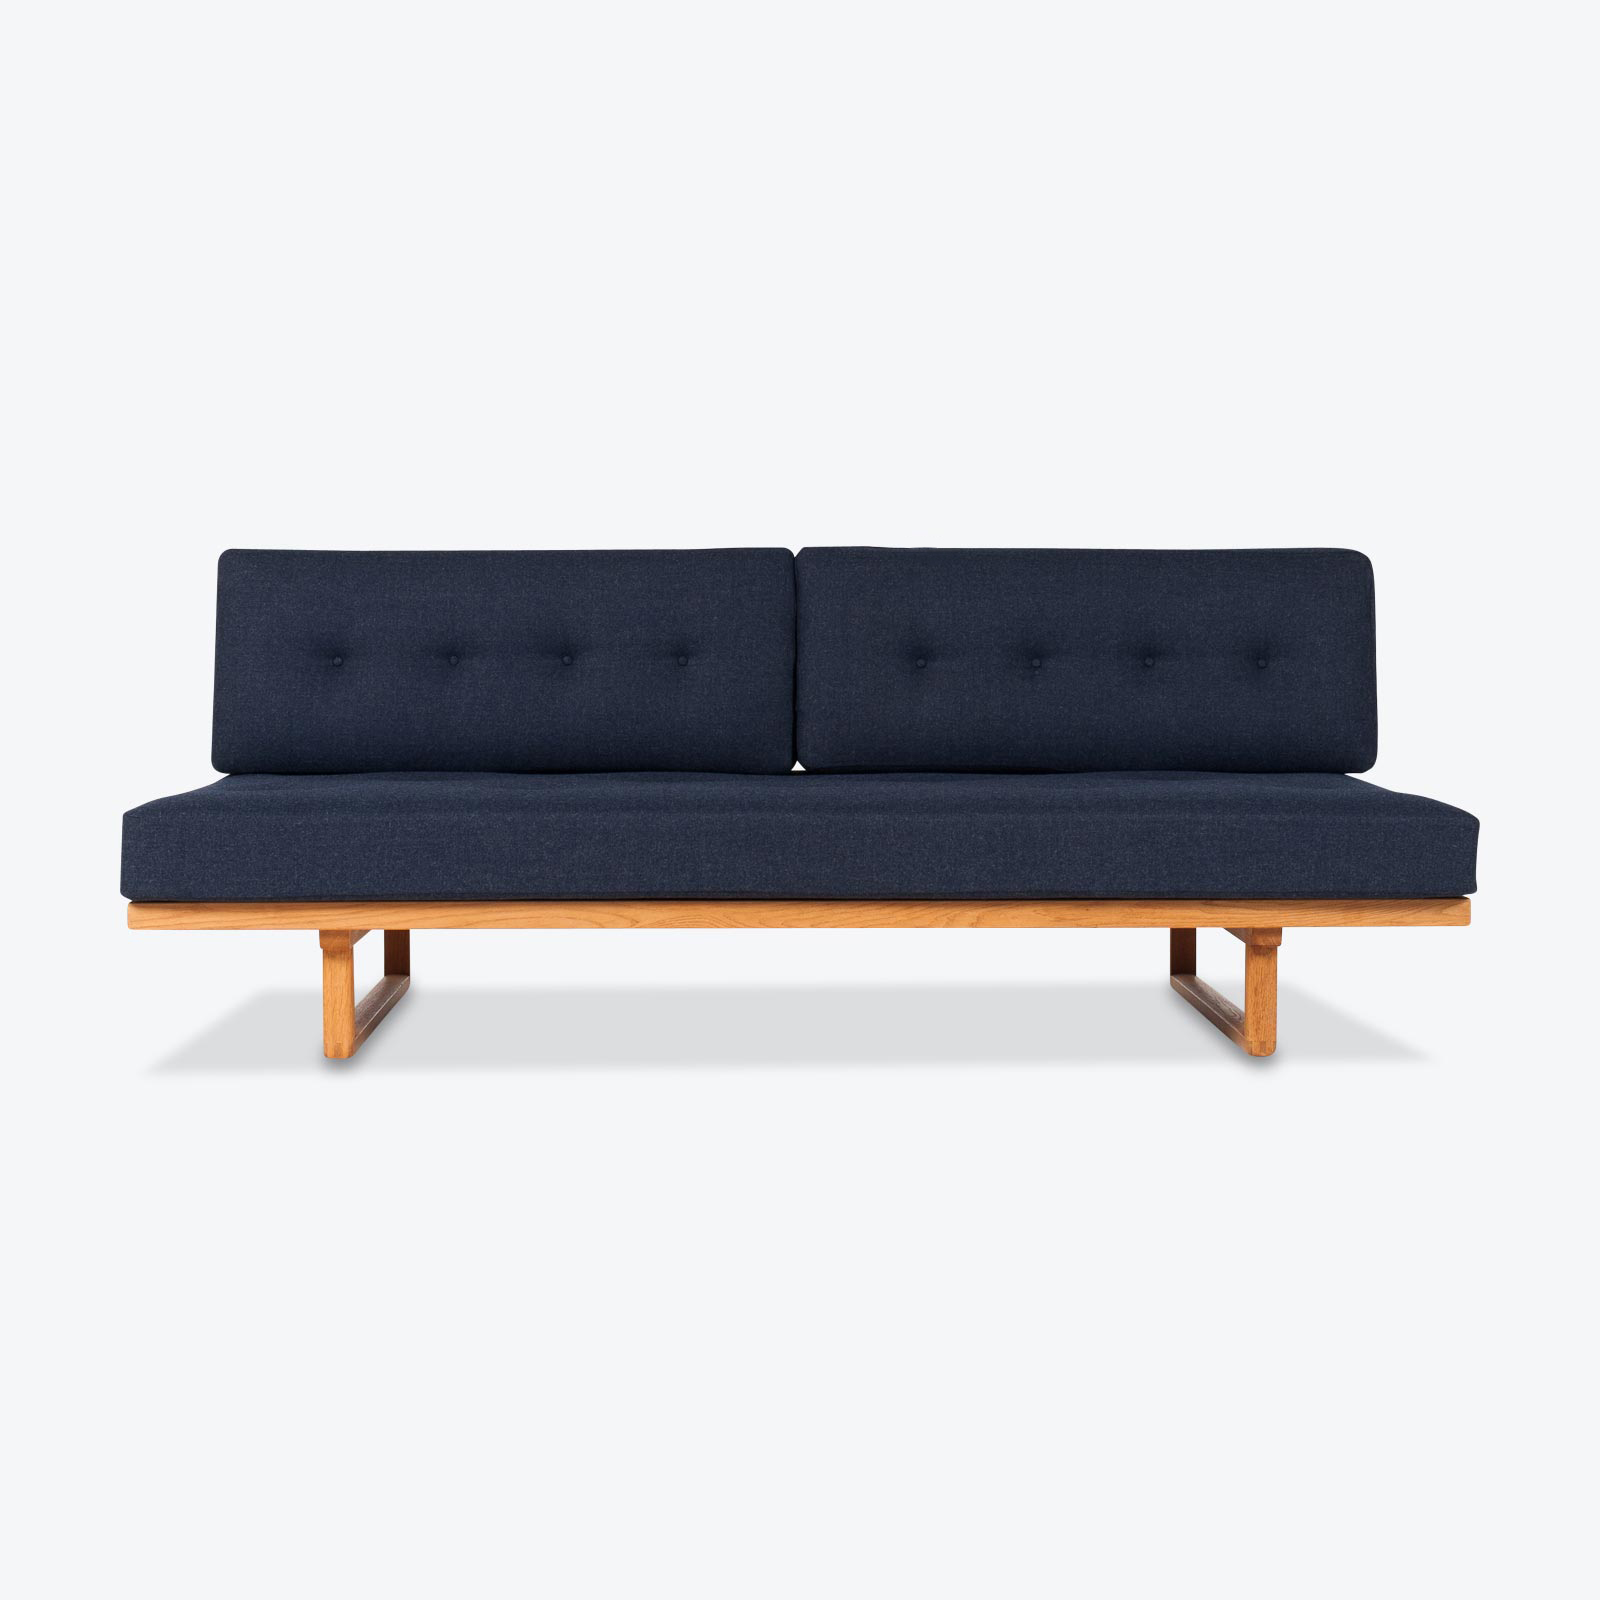 Model 4312 Daybed By Borge Mogensen In Oak Manufactured By Fredericia Furniture 1950s Denmark 01